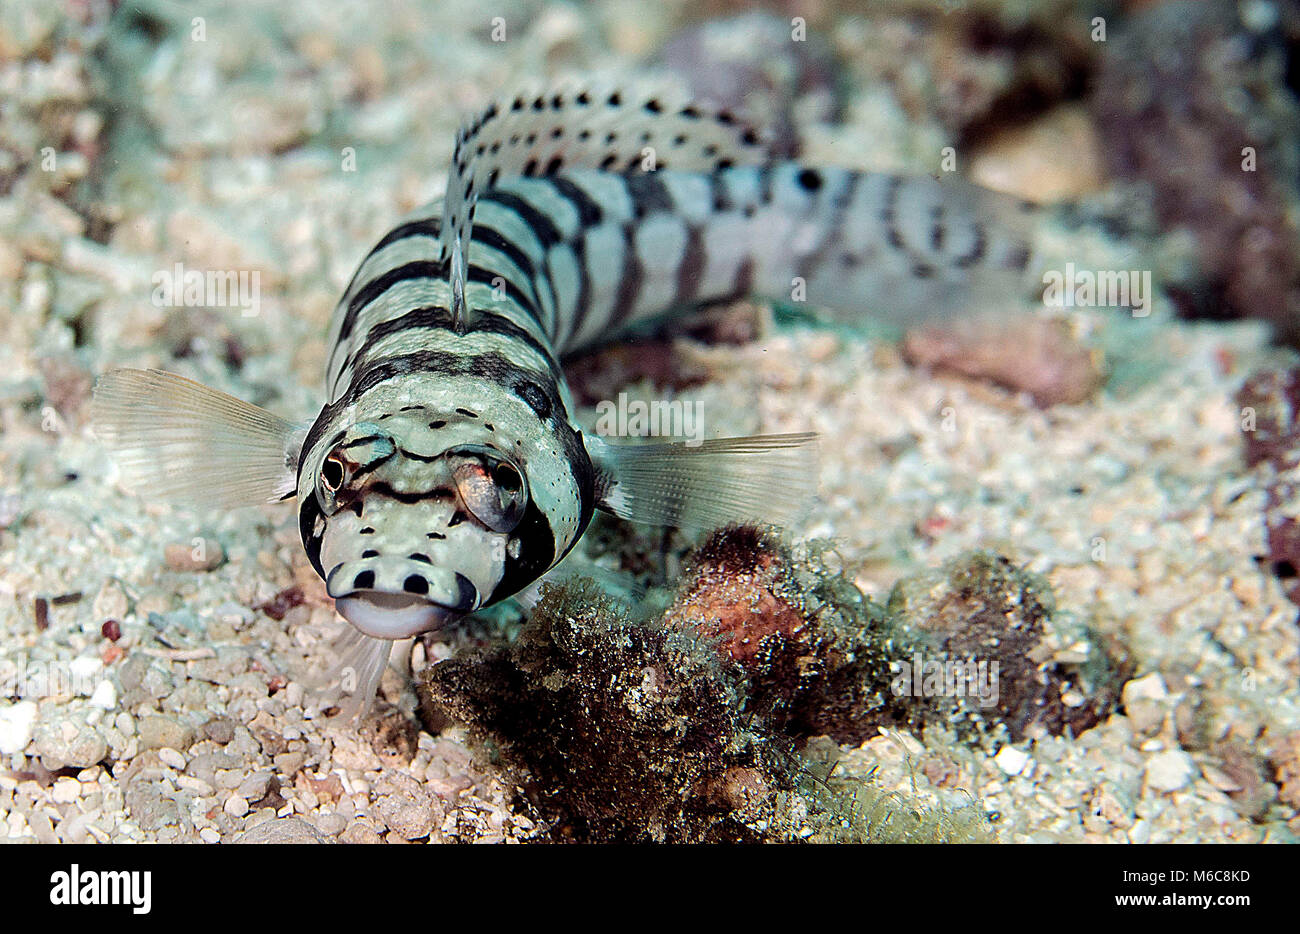 Sand perches (Pinguipedidae). Picture was taken in Moalboal, Philippines - Stock Image